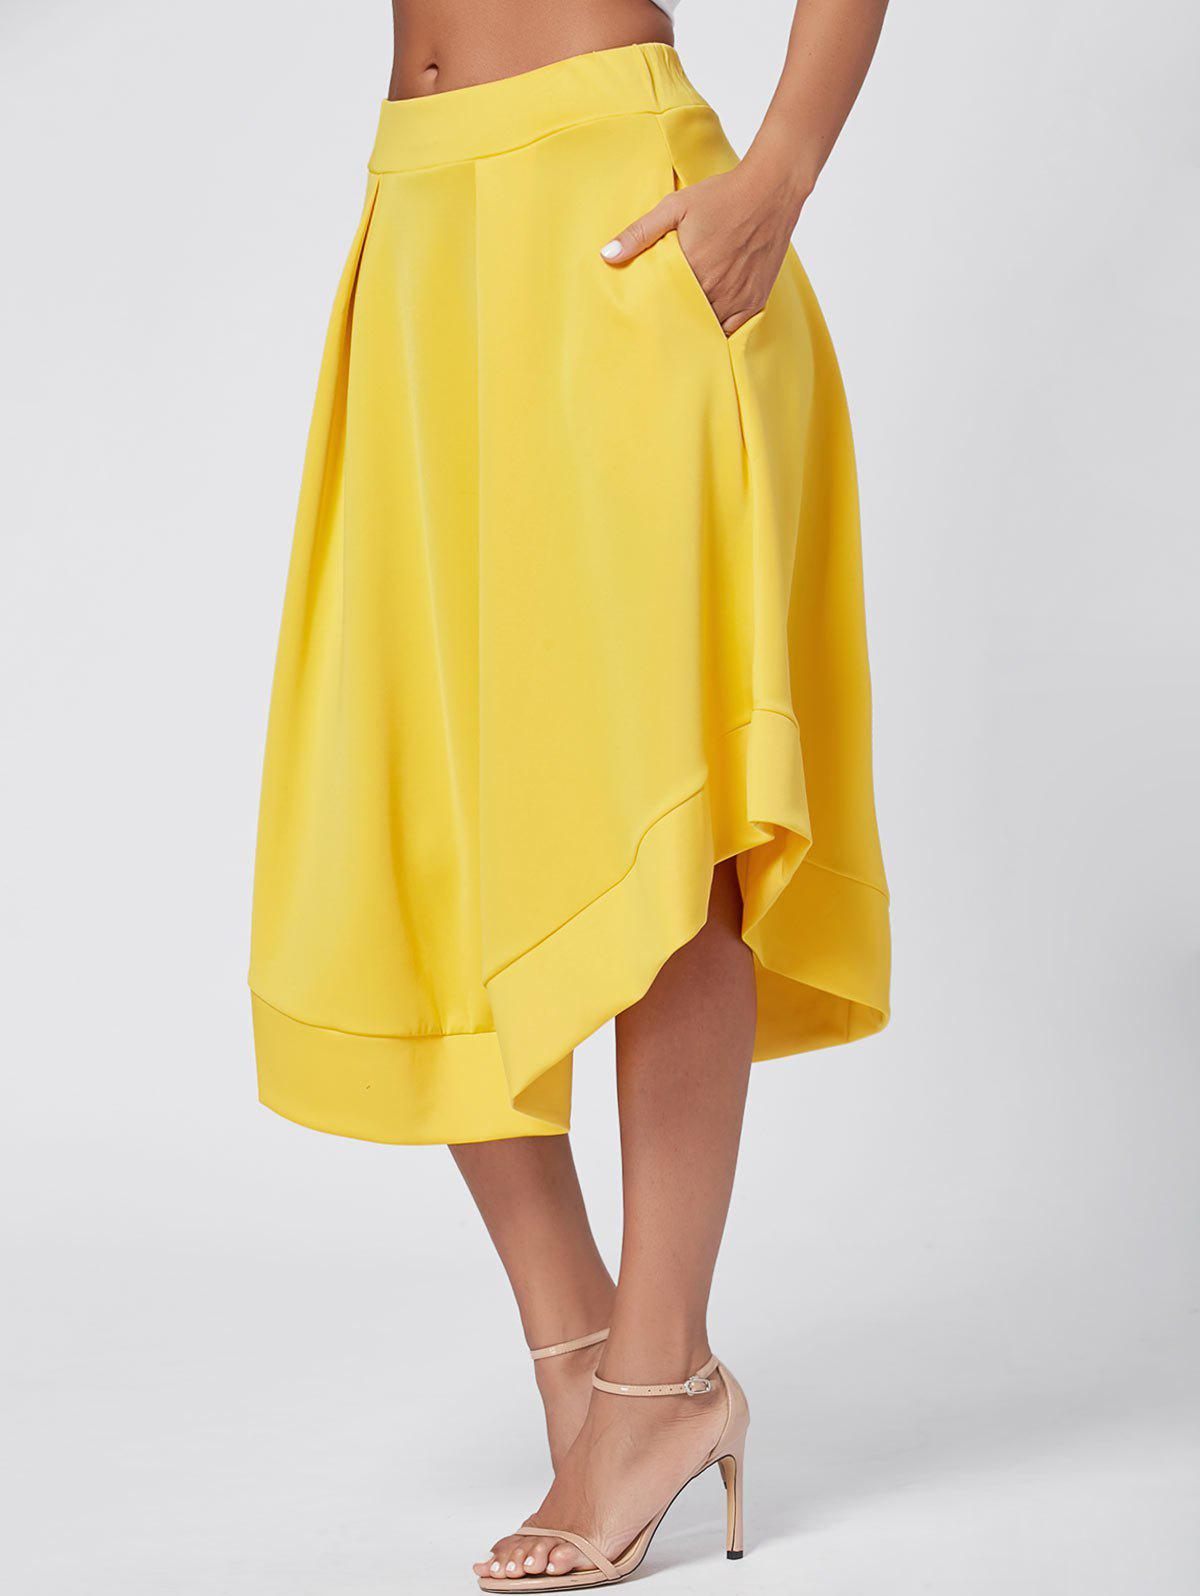 High Waist Midi Flared Skirt - YELLOW S